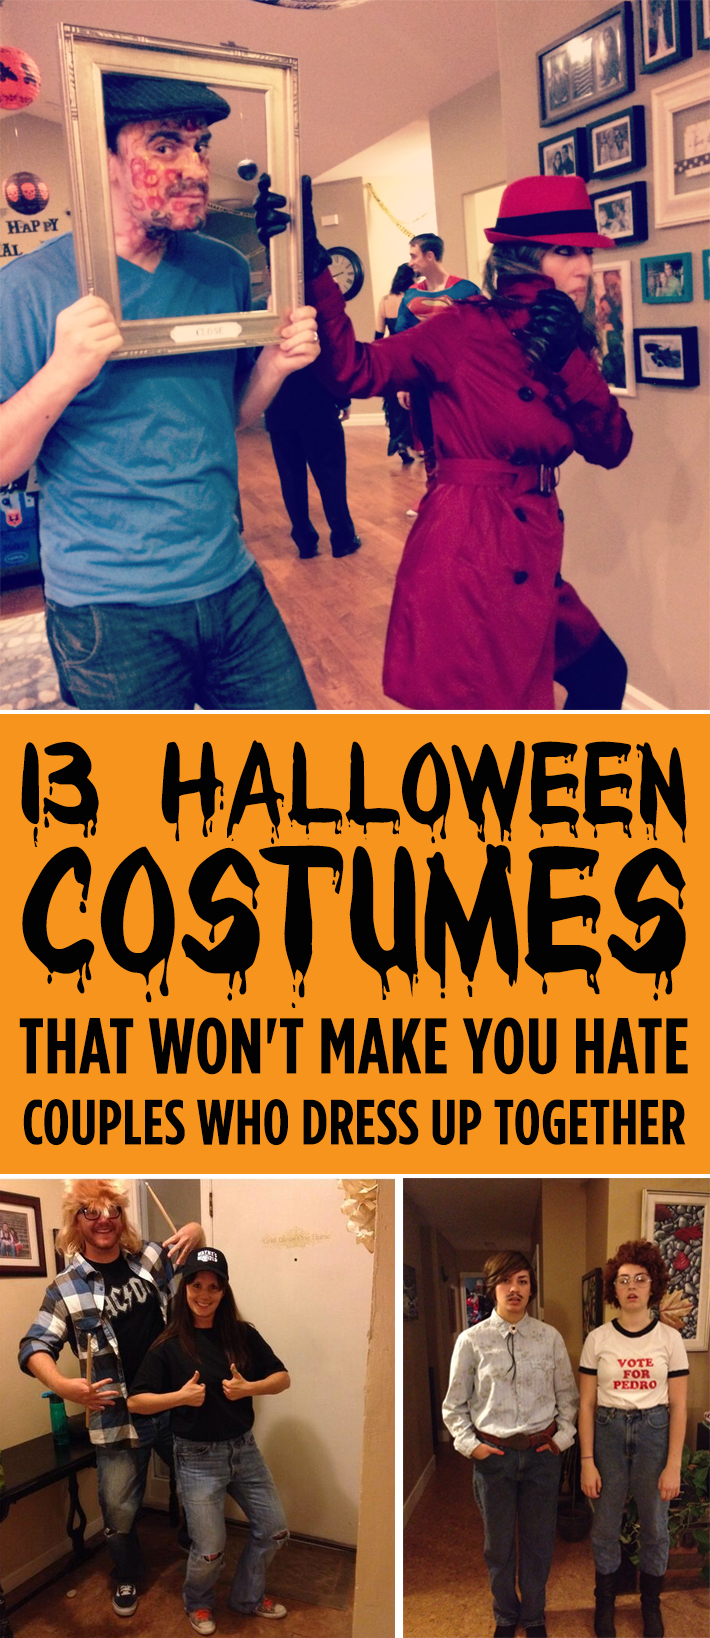 Halloween Ideas For Interracial Couples 2020 13 Halloween Costumes That Won't Make You Hate Couples Who Dress